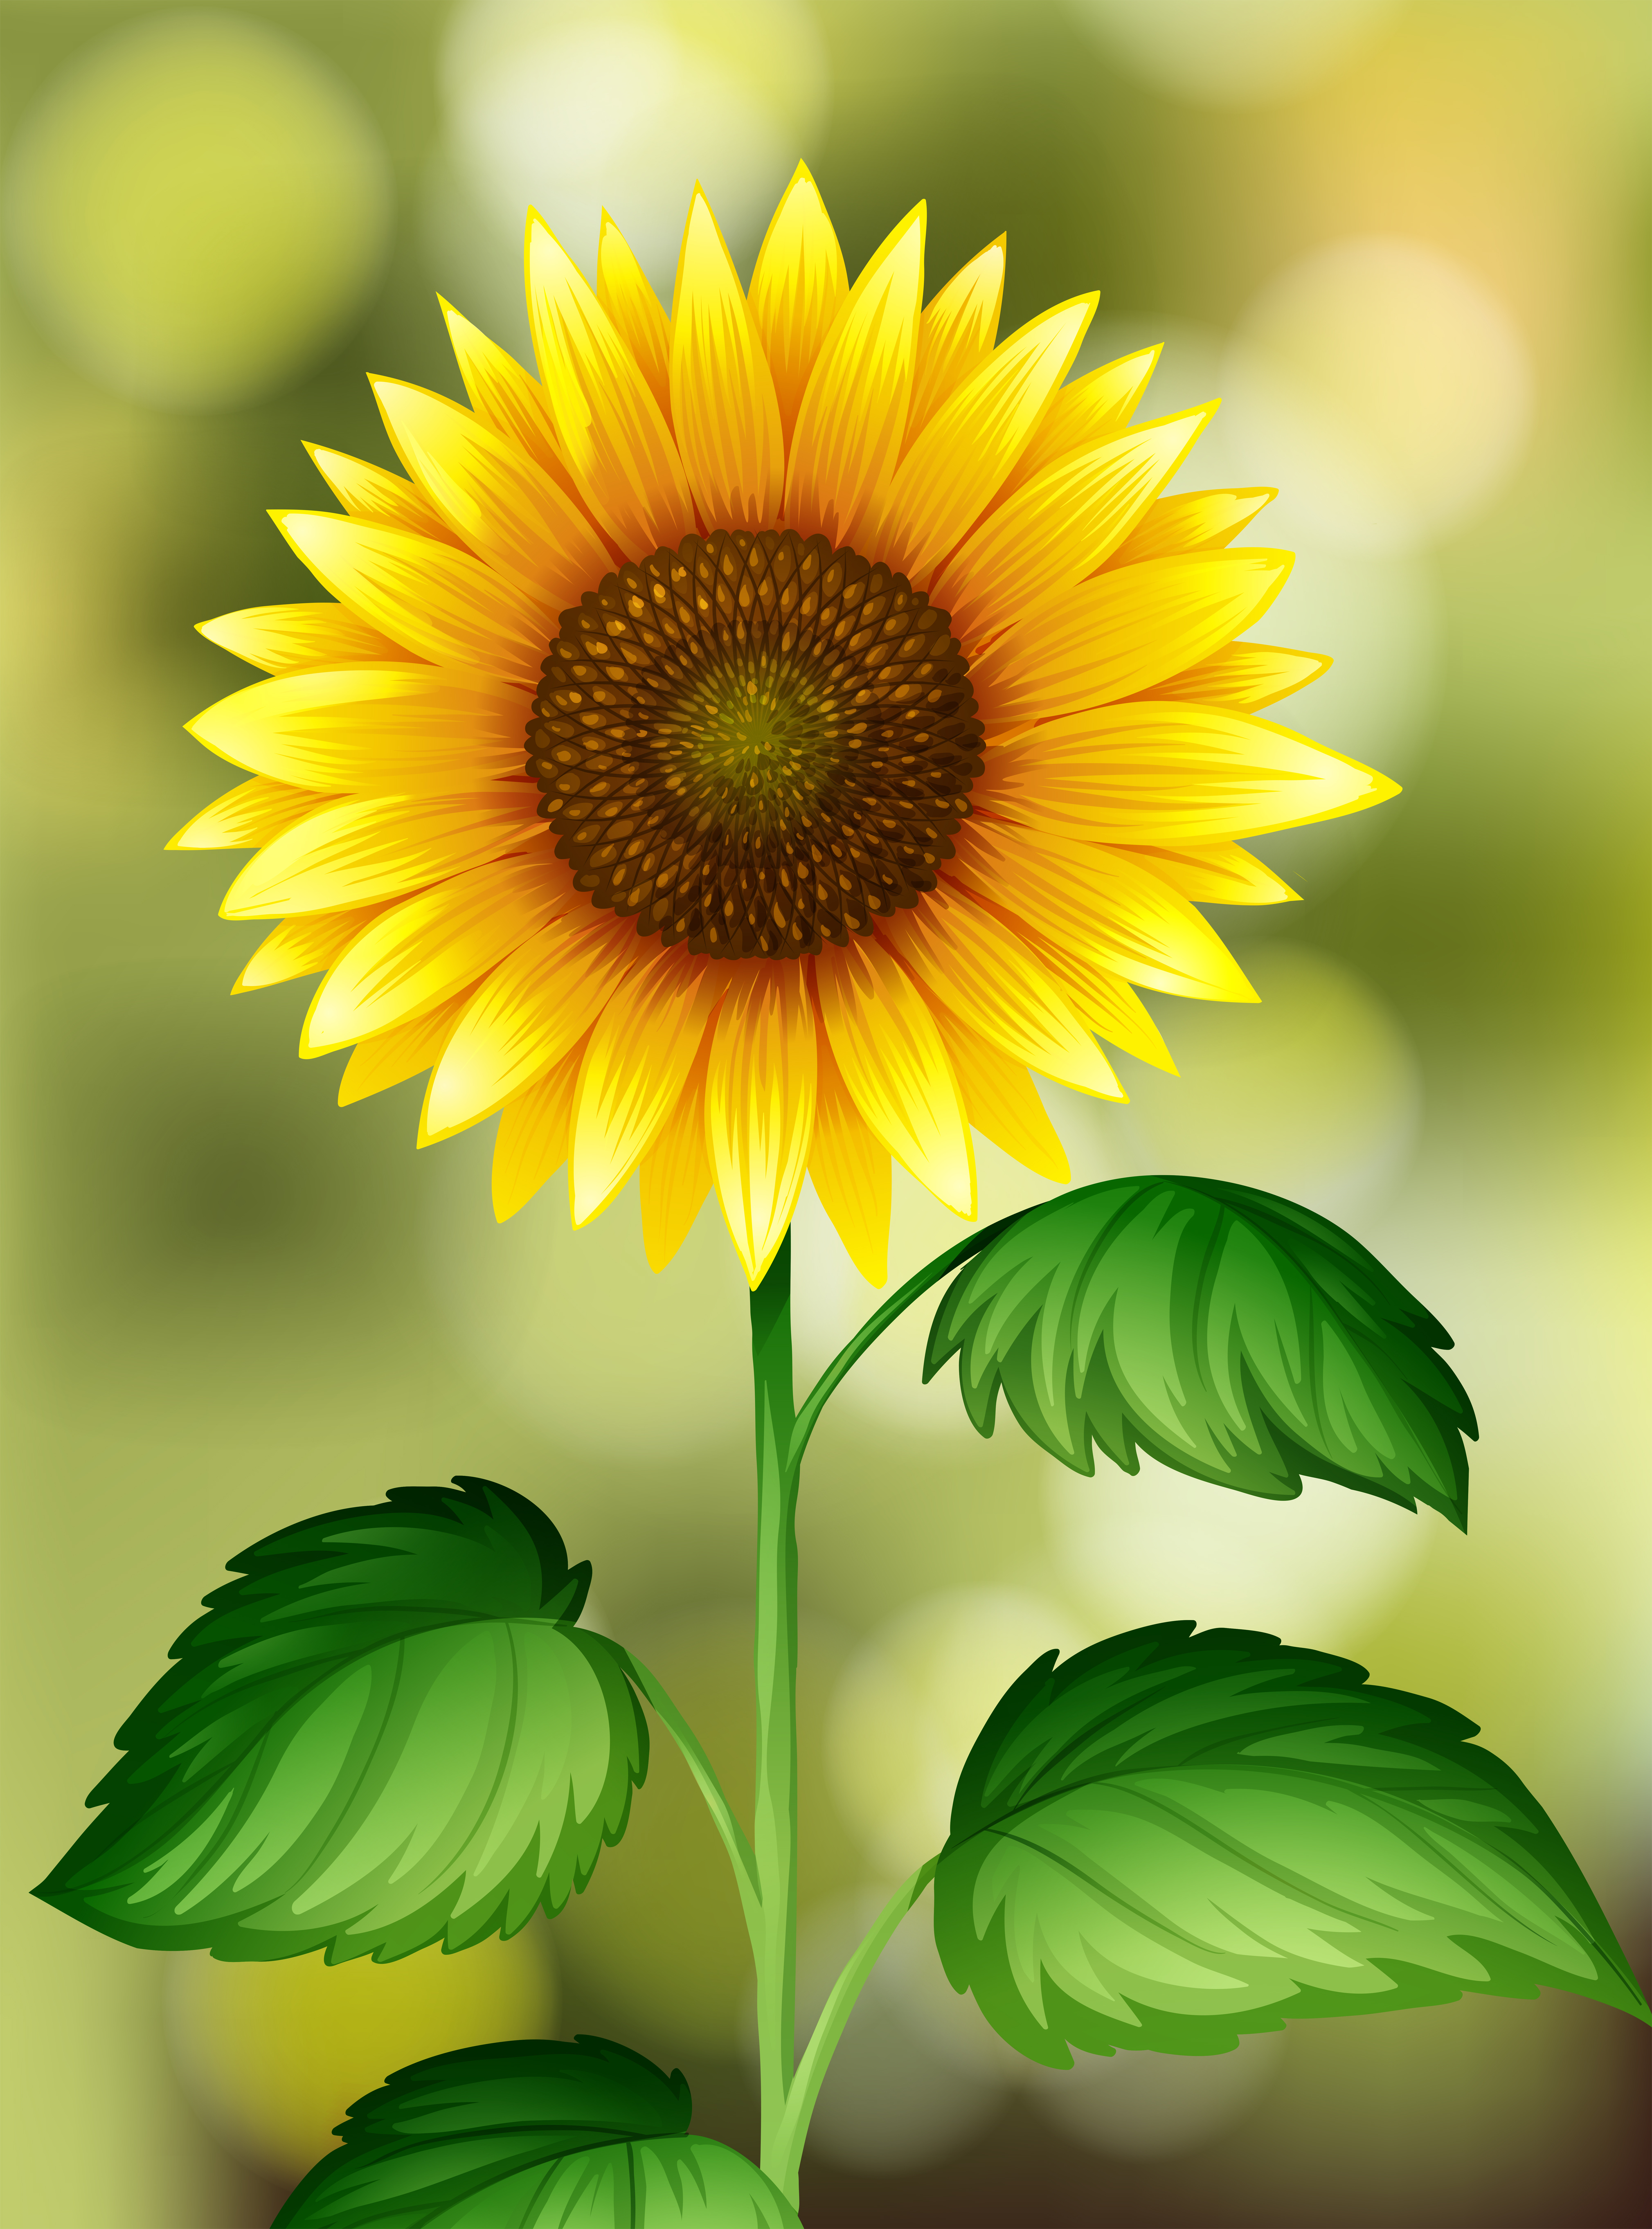 A Sunflower On Nature Background Download Free Vectors